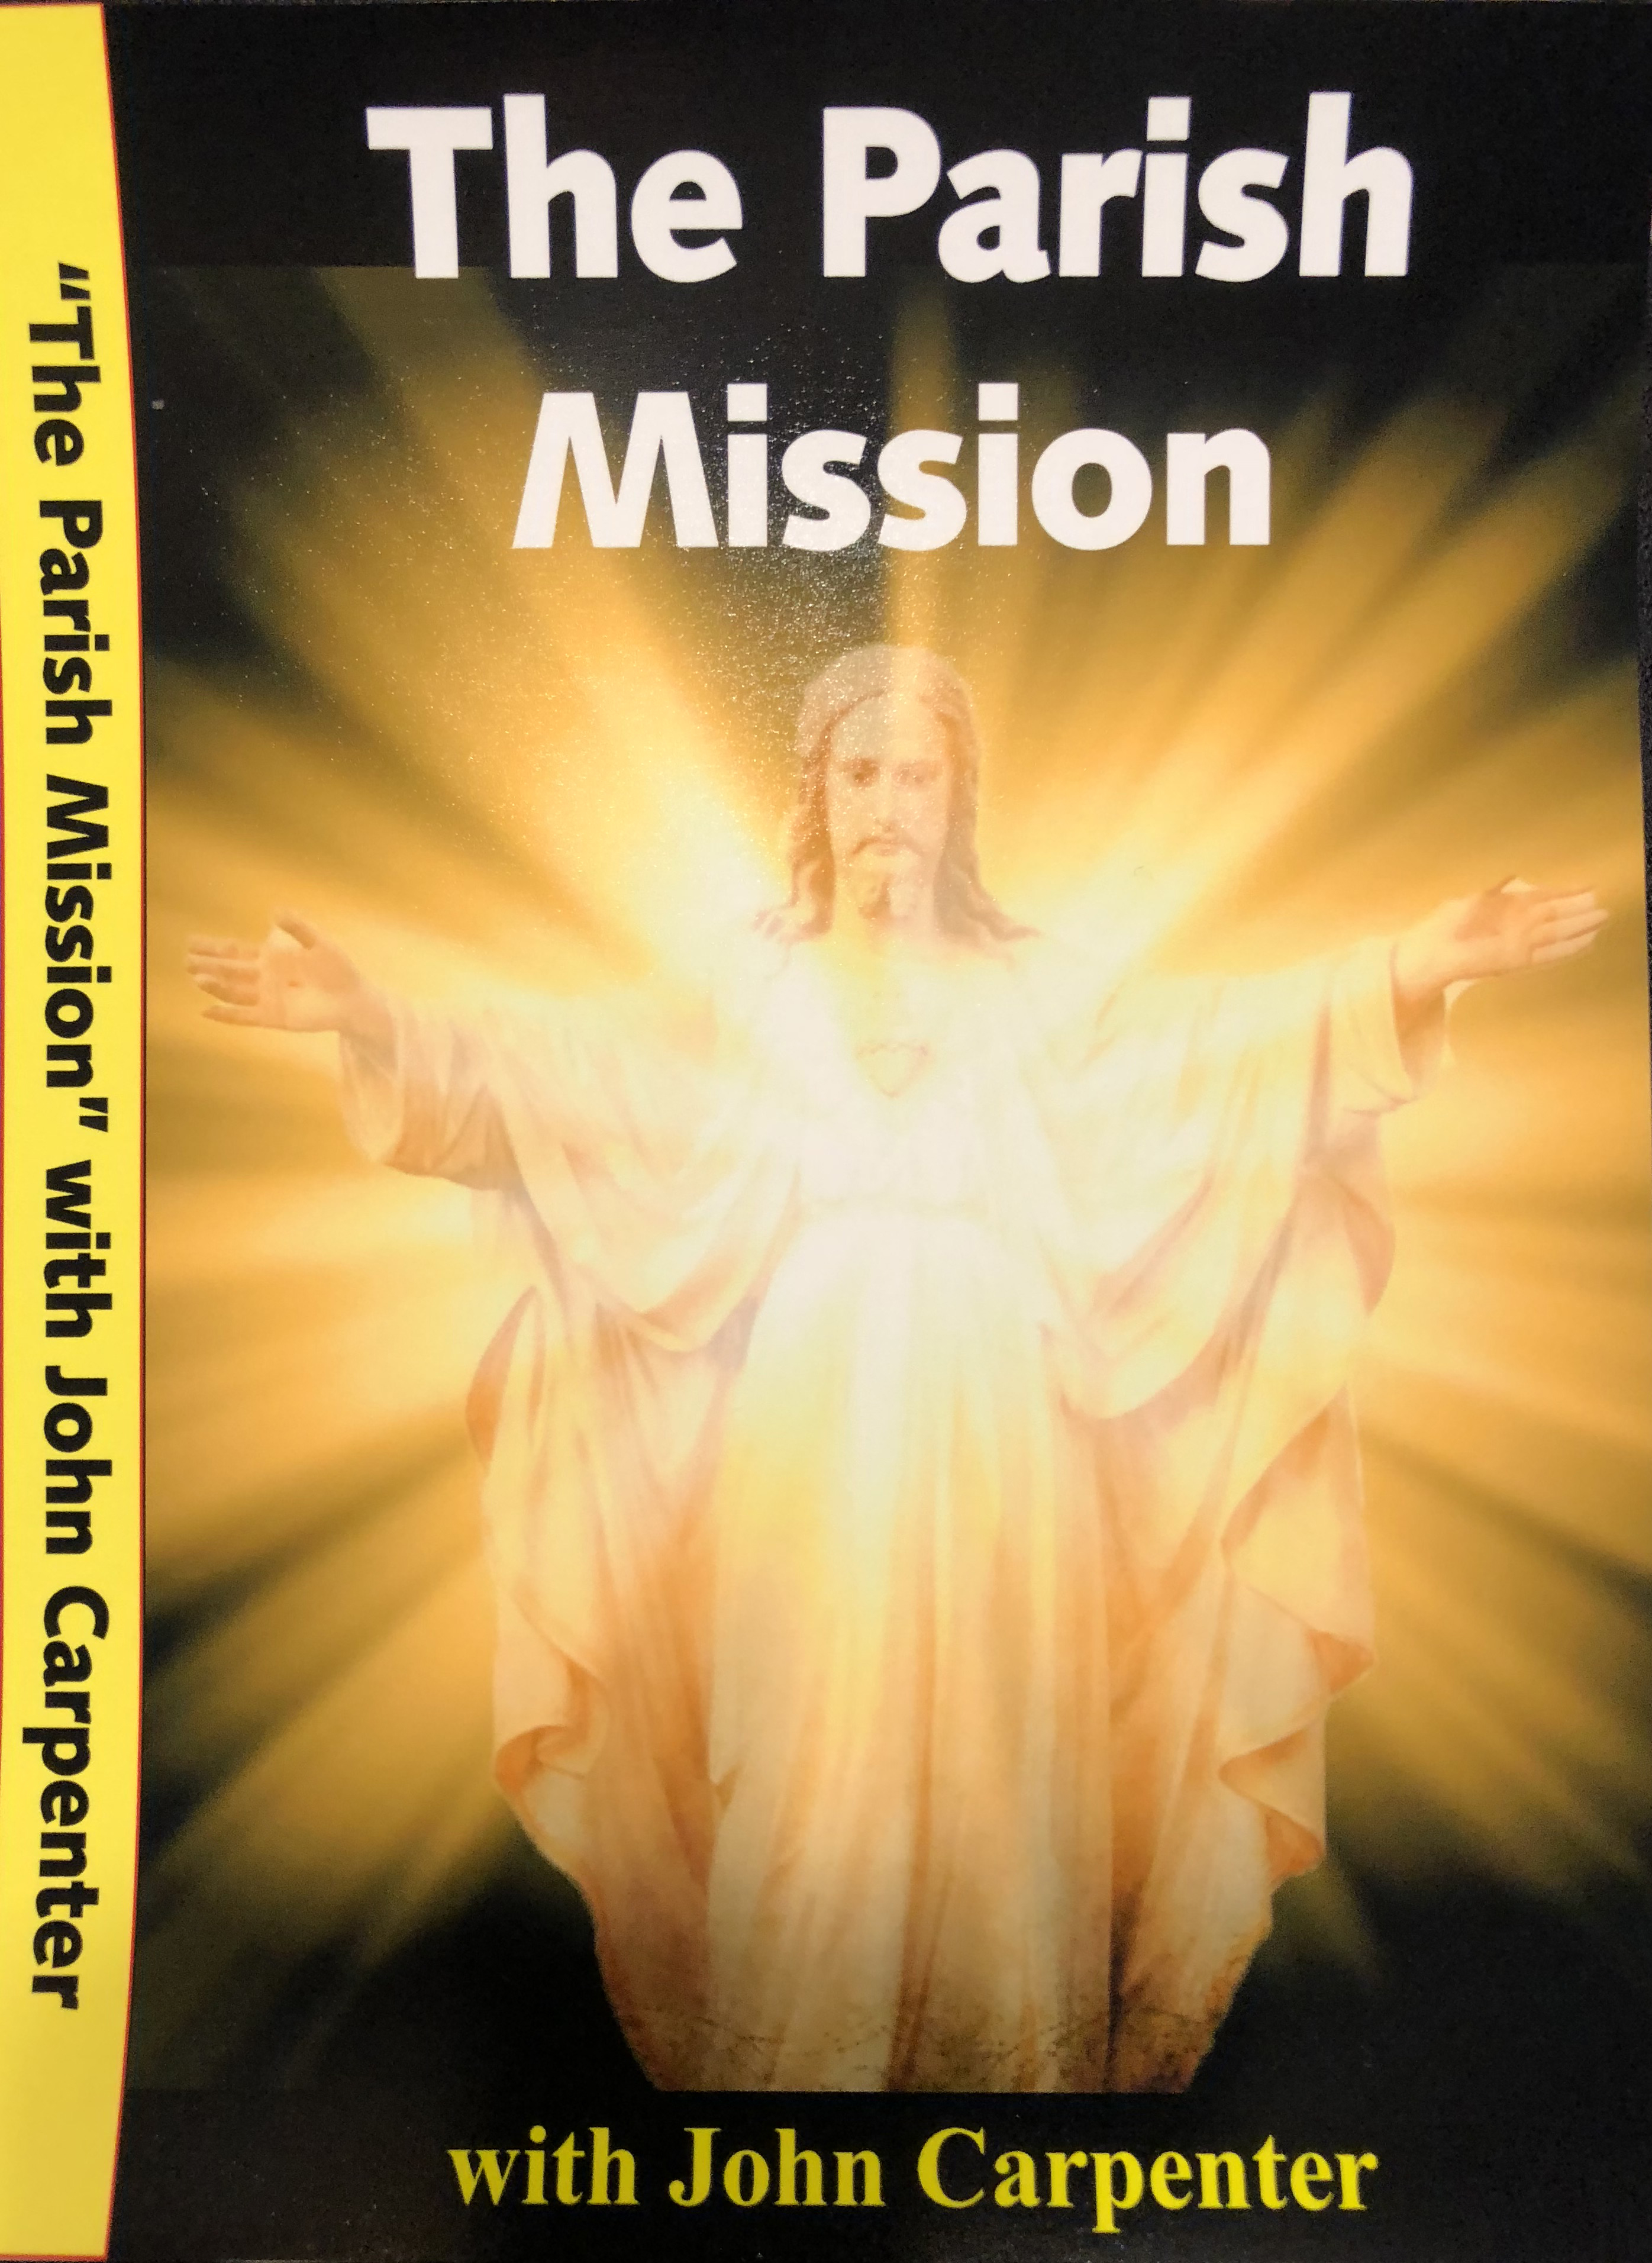 The Parish Mission DVD Front Cover